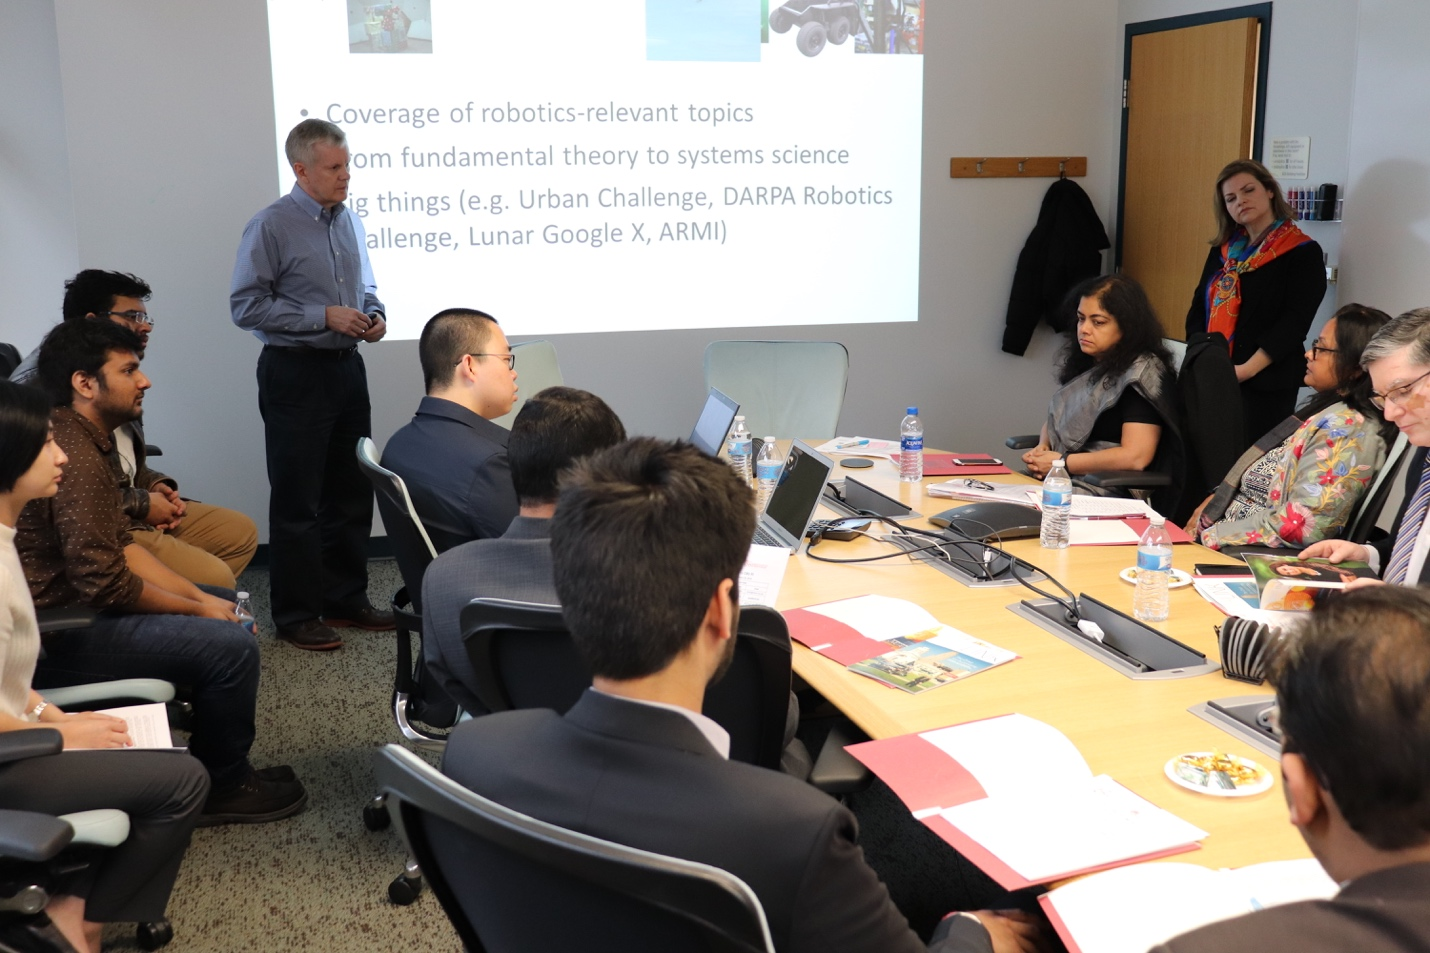 CMU RISS program director Dr. John Dolan presents an overview of CMU Robotics Institute to the FICCI delegation.